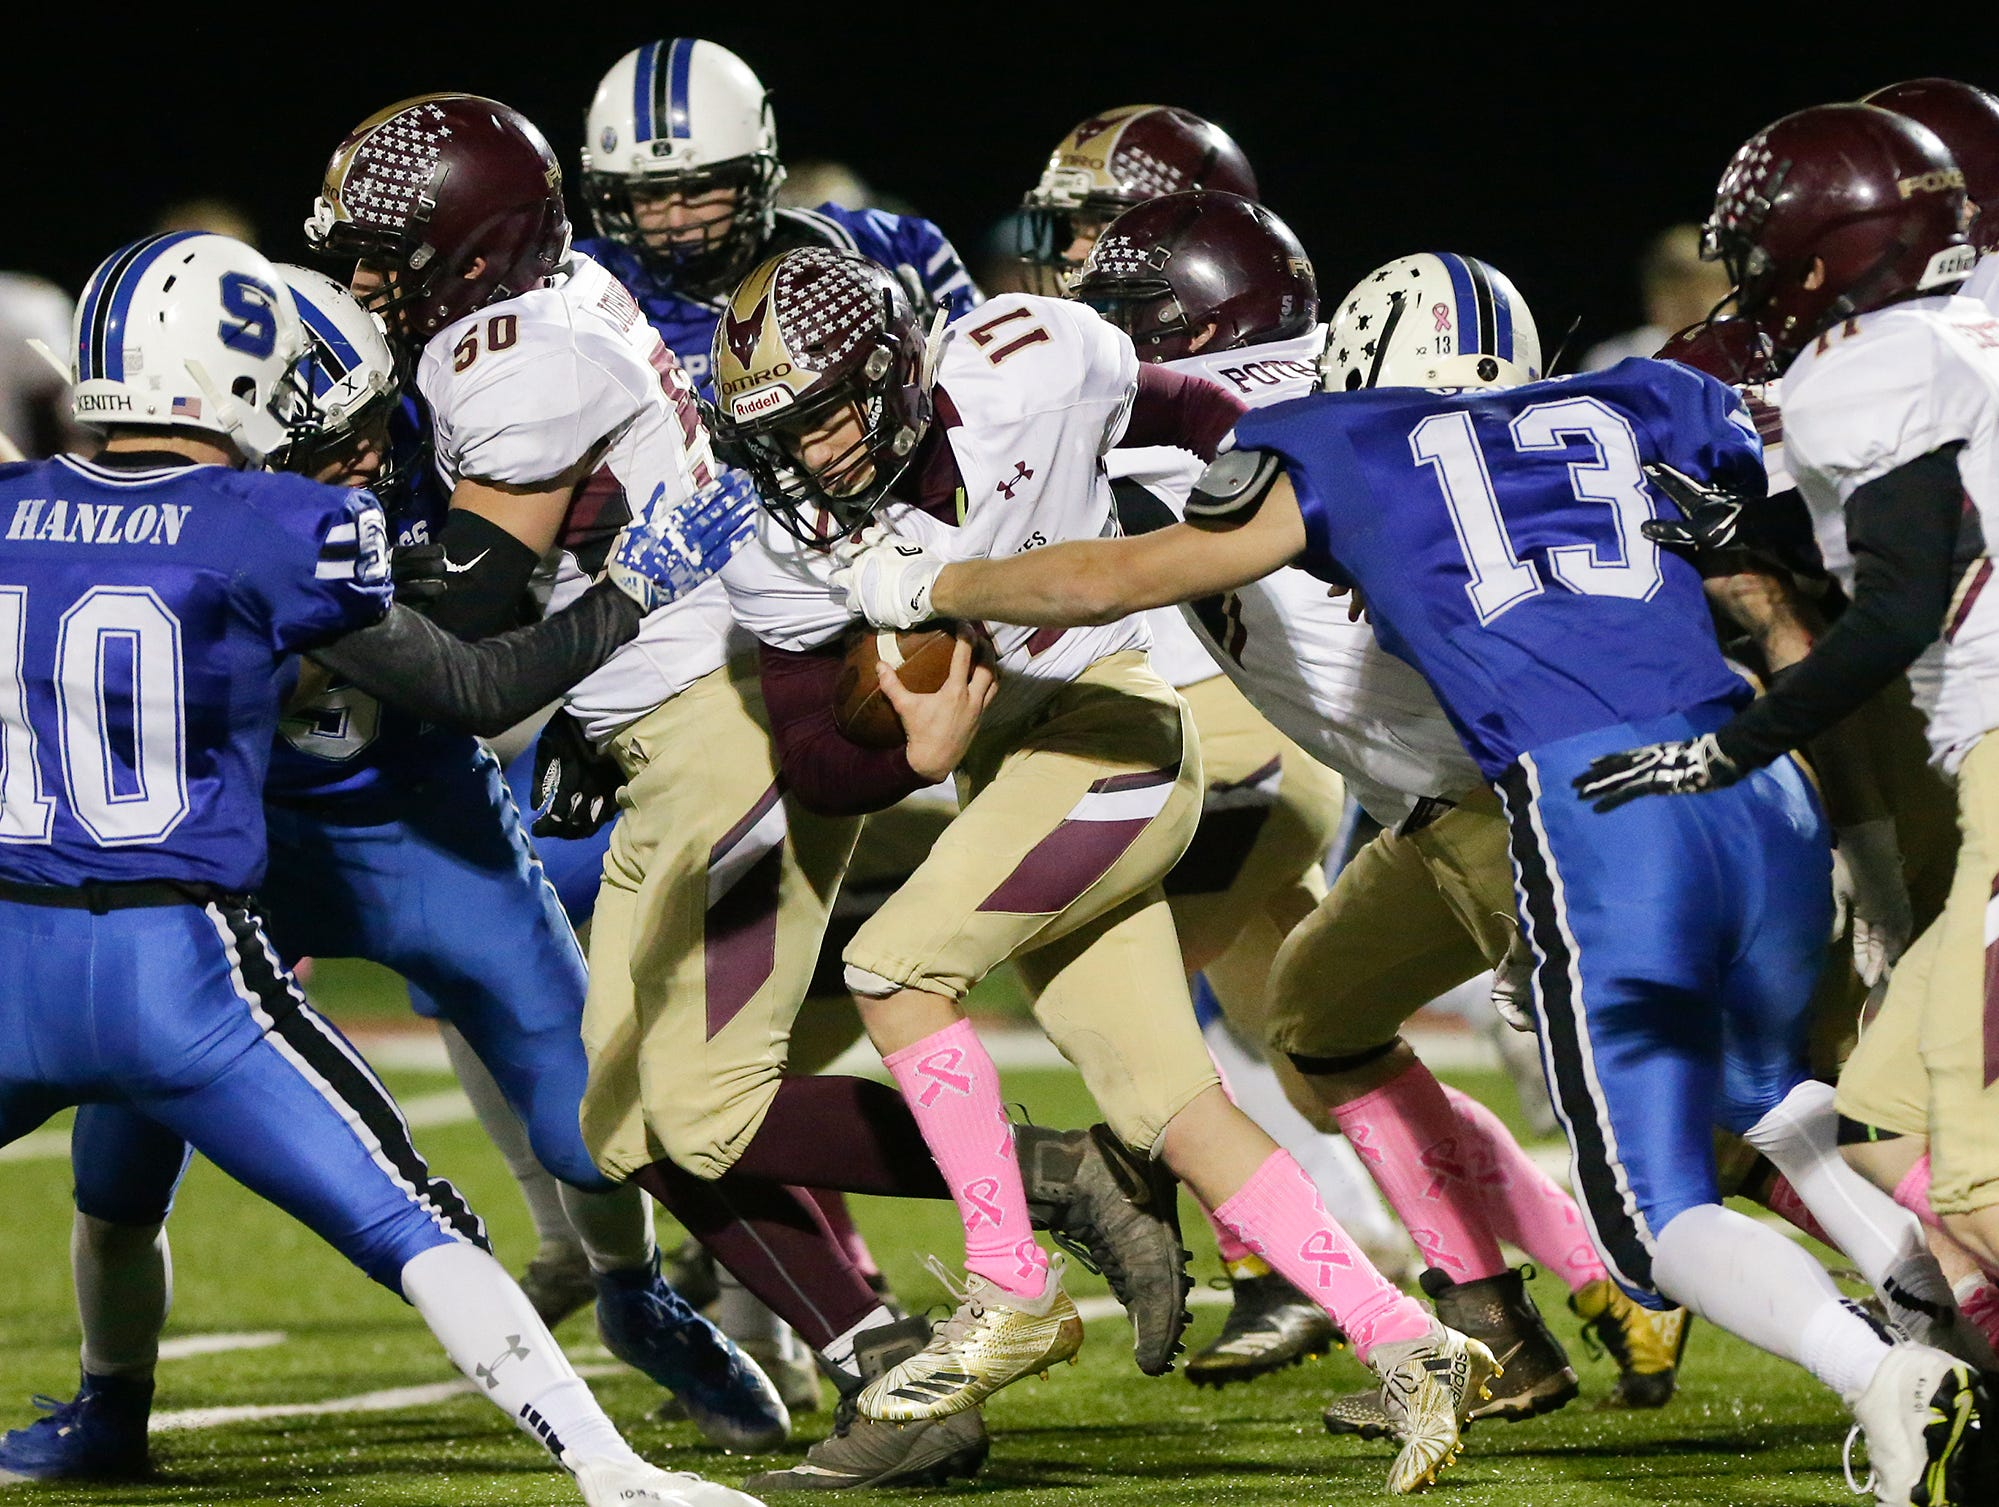 Omro High School football's Ben Wellhoefer returns a kickoff against St. Mary's Springs Academy Friday, October 26, 2018 during their WIAA division five, level 2 playoff game played in Lomira, Wisconsin. Springs won the match-up 33-20. Doug Raflik/USA TODAY NETWORK-Wisconsin